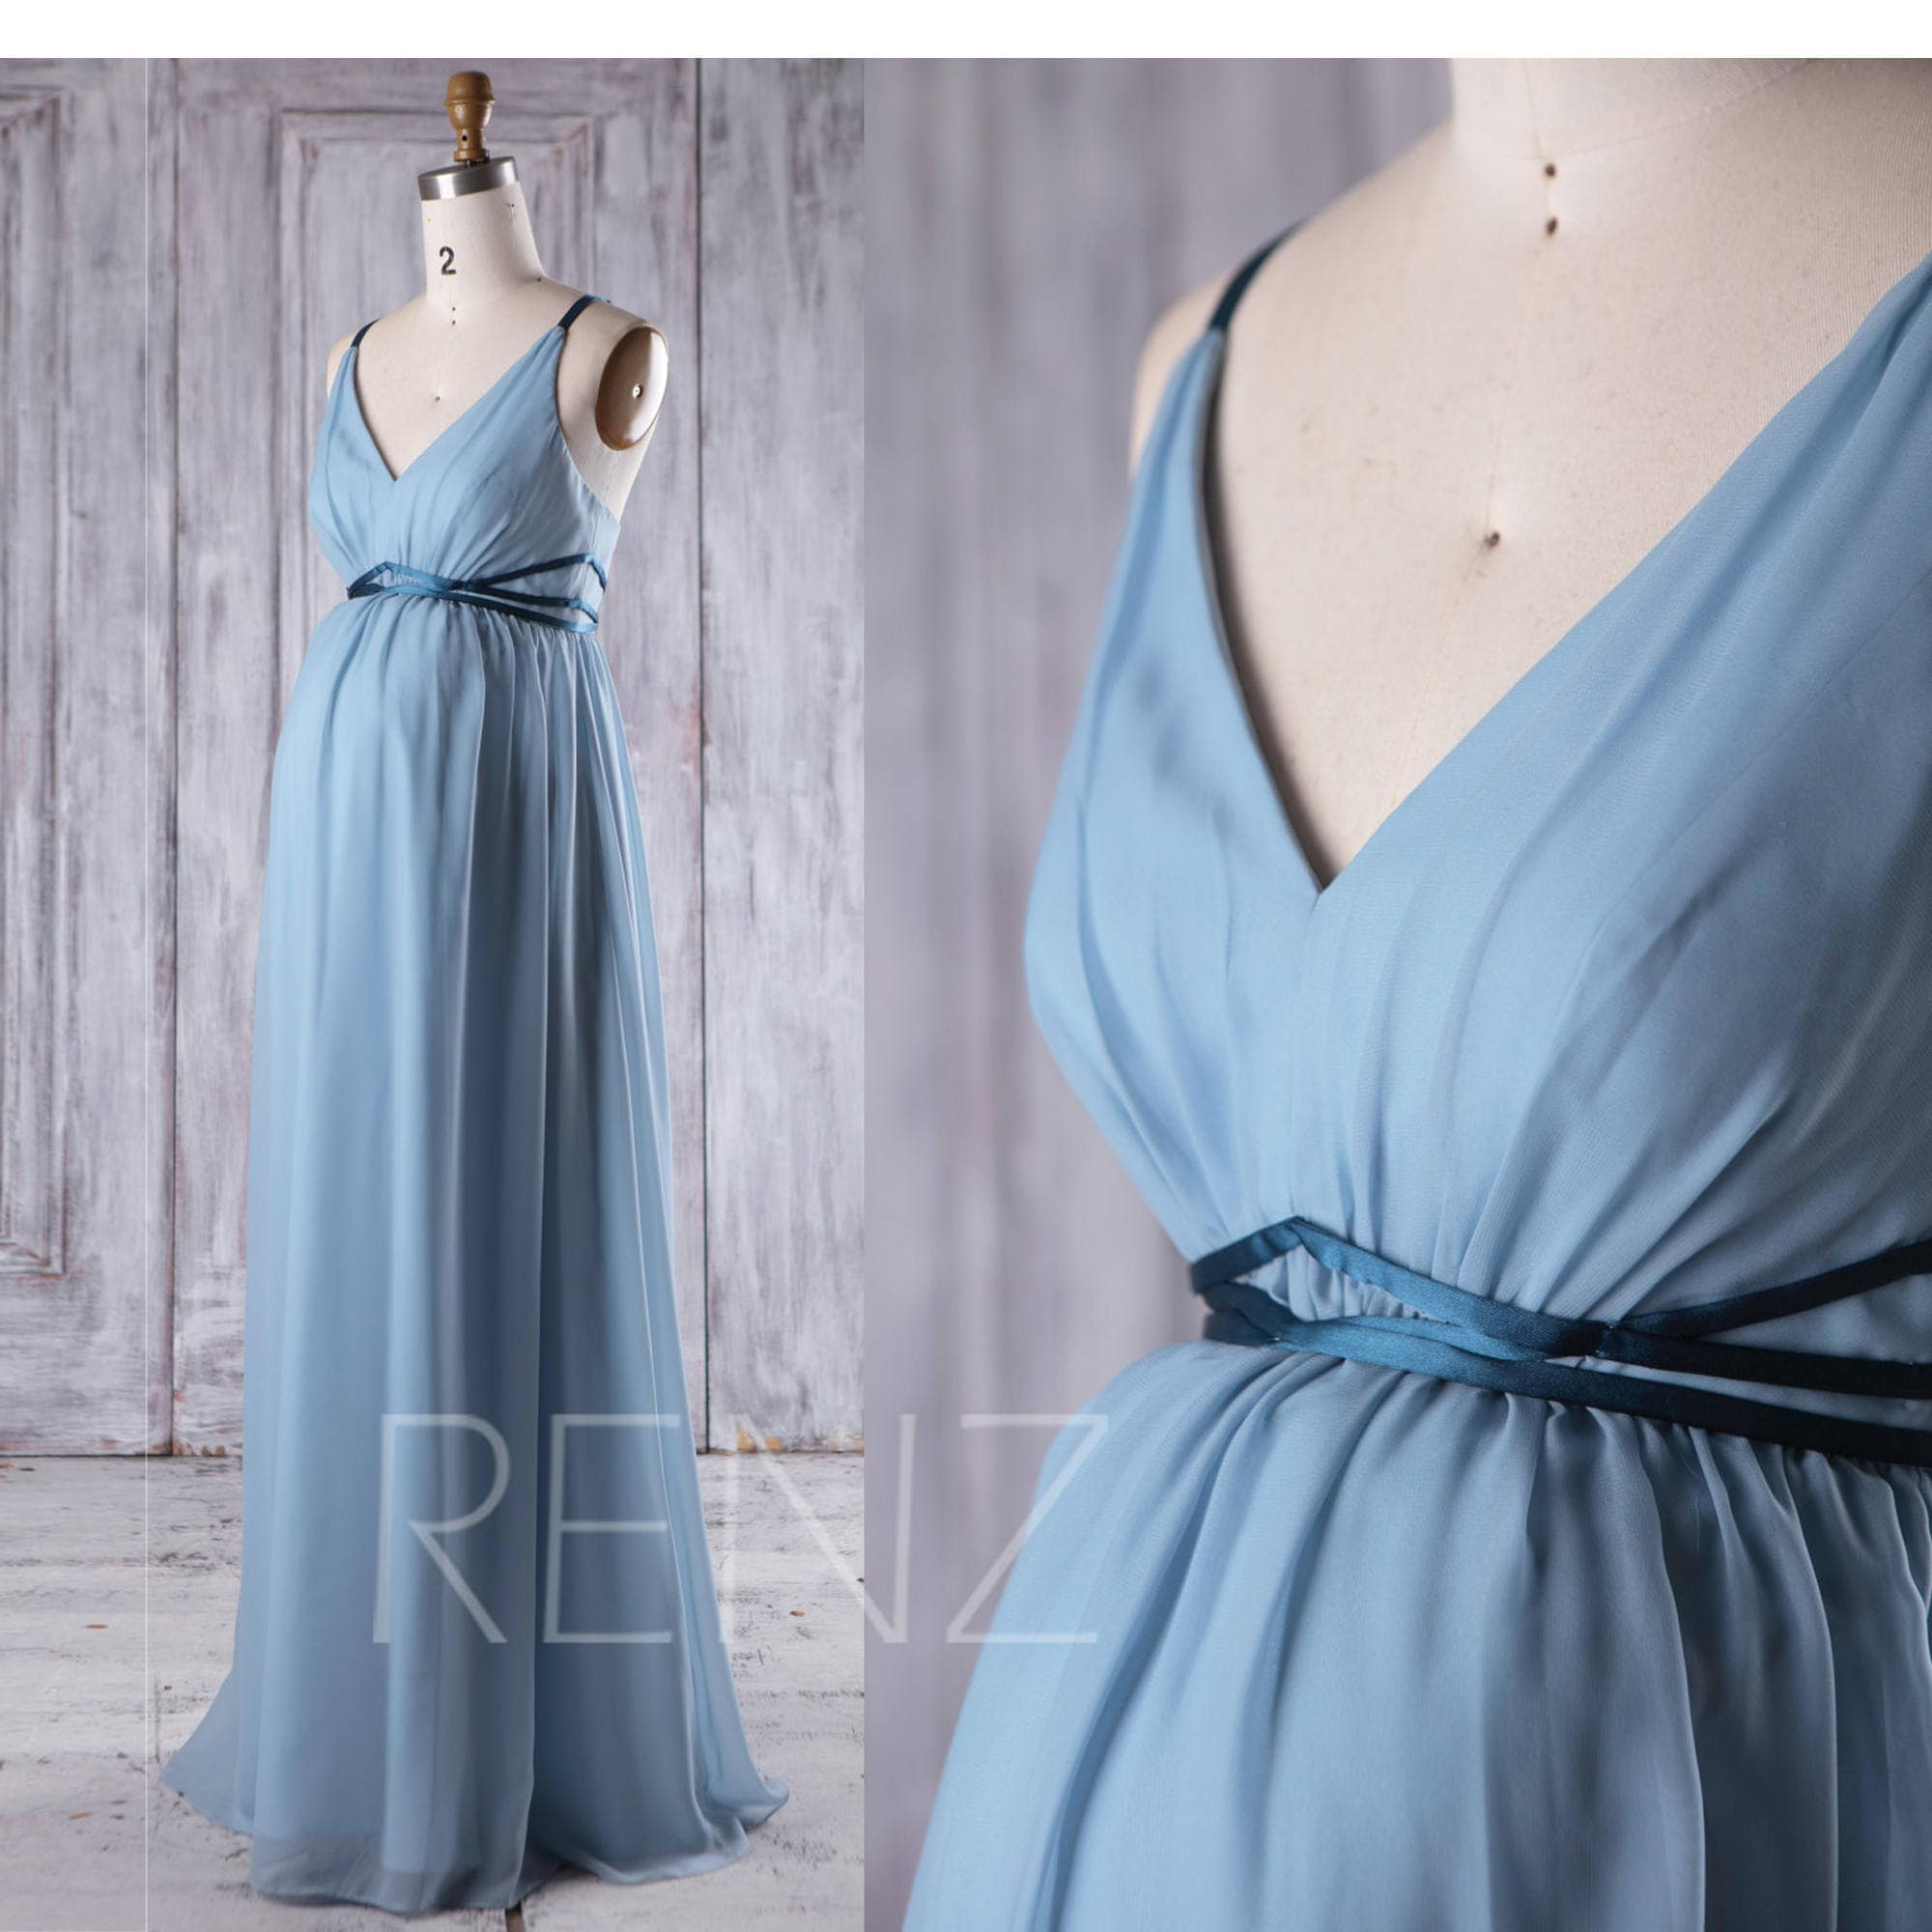 Maternity Bridesmaid Dress Dusty Blue Chiffon PregnancyDress | Etsy